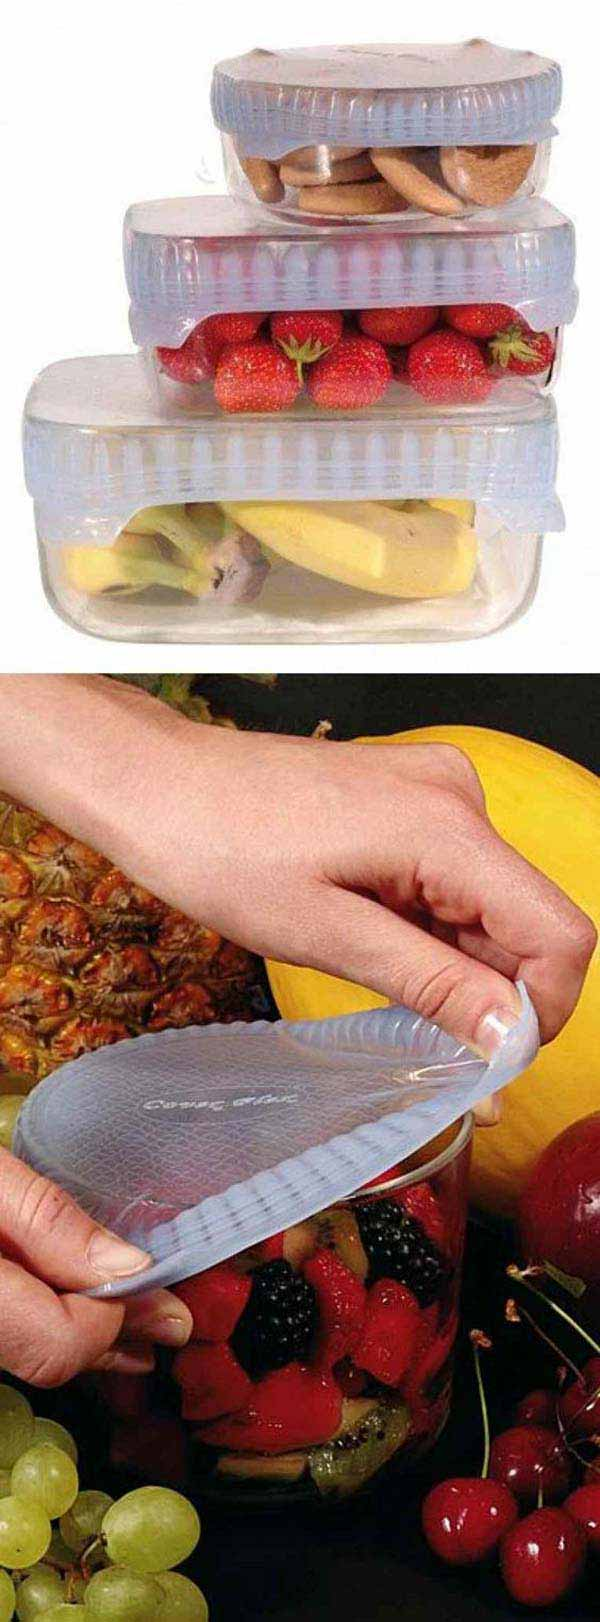 34 Super Epic Small Kitchen Hacks For Your Household homesthetics decor (5)